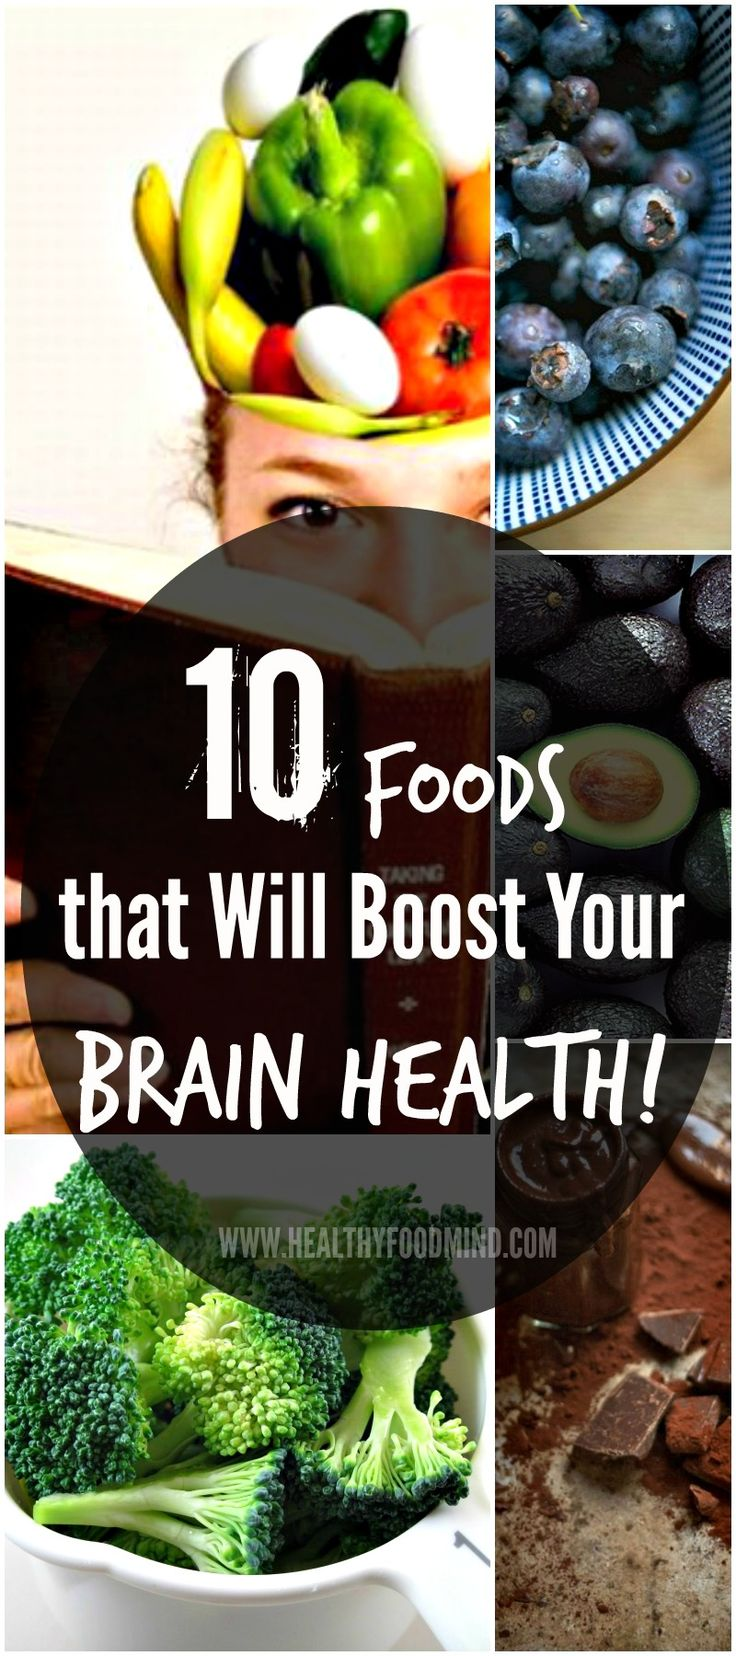 18 best brain food images on pinterest health foods healthy research is showing that you can increase your chances of maintaining a healthy brain well into forumfinder Image collections